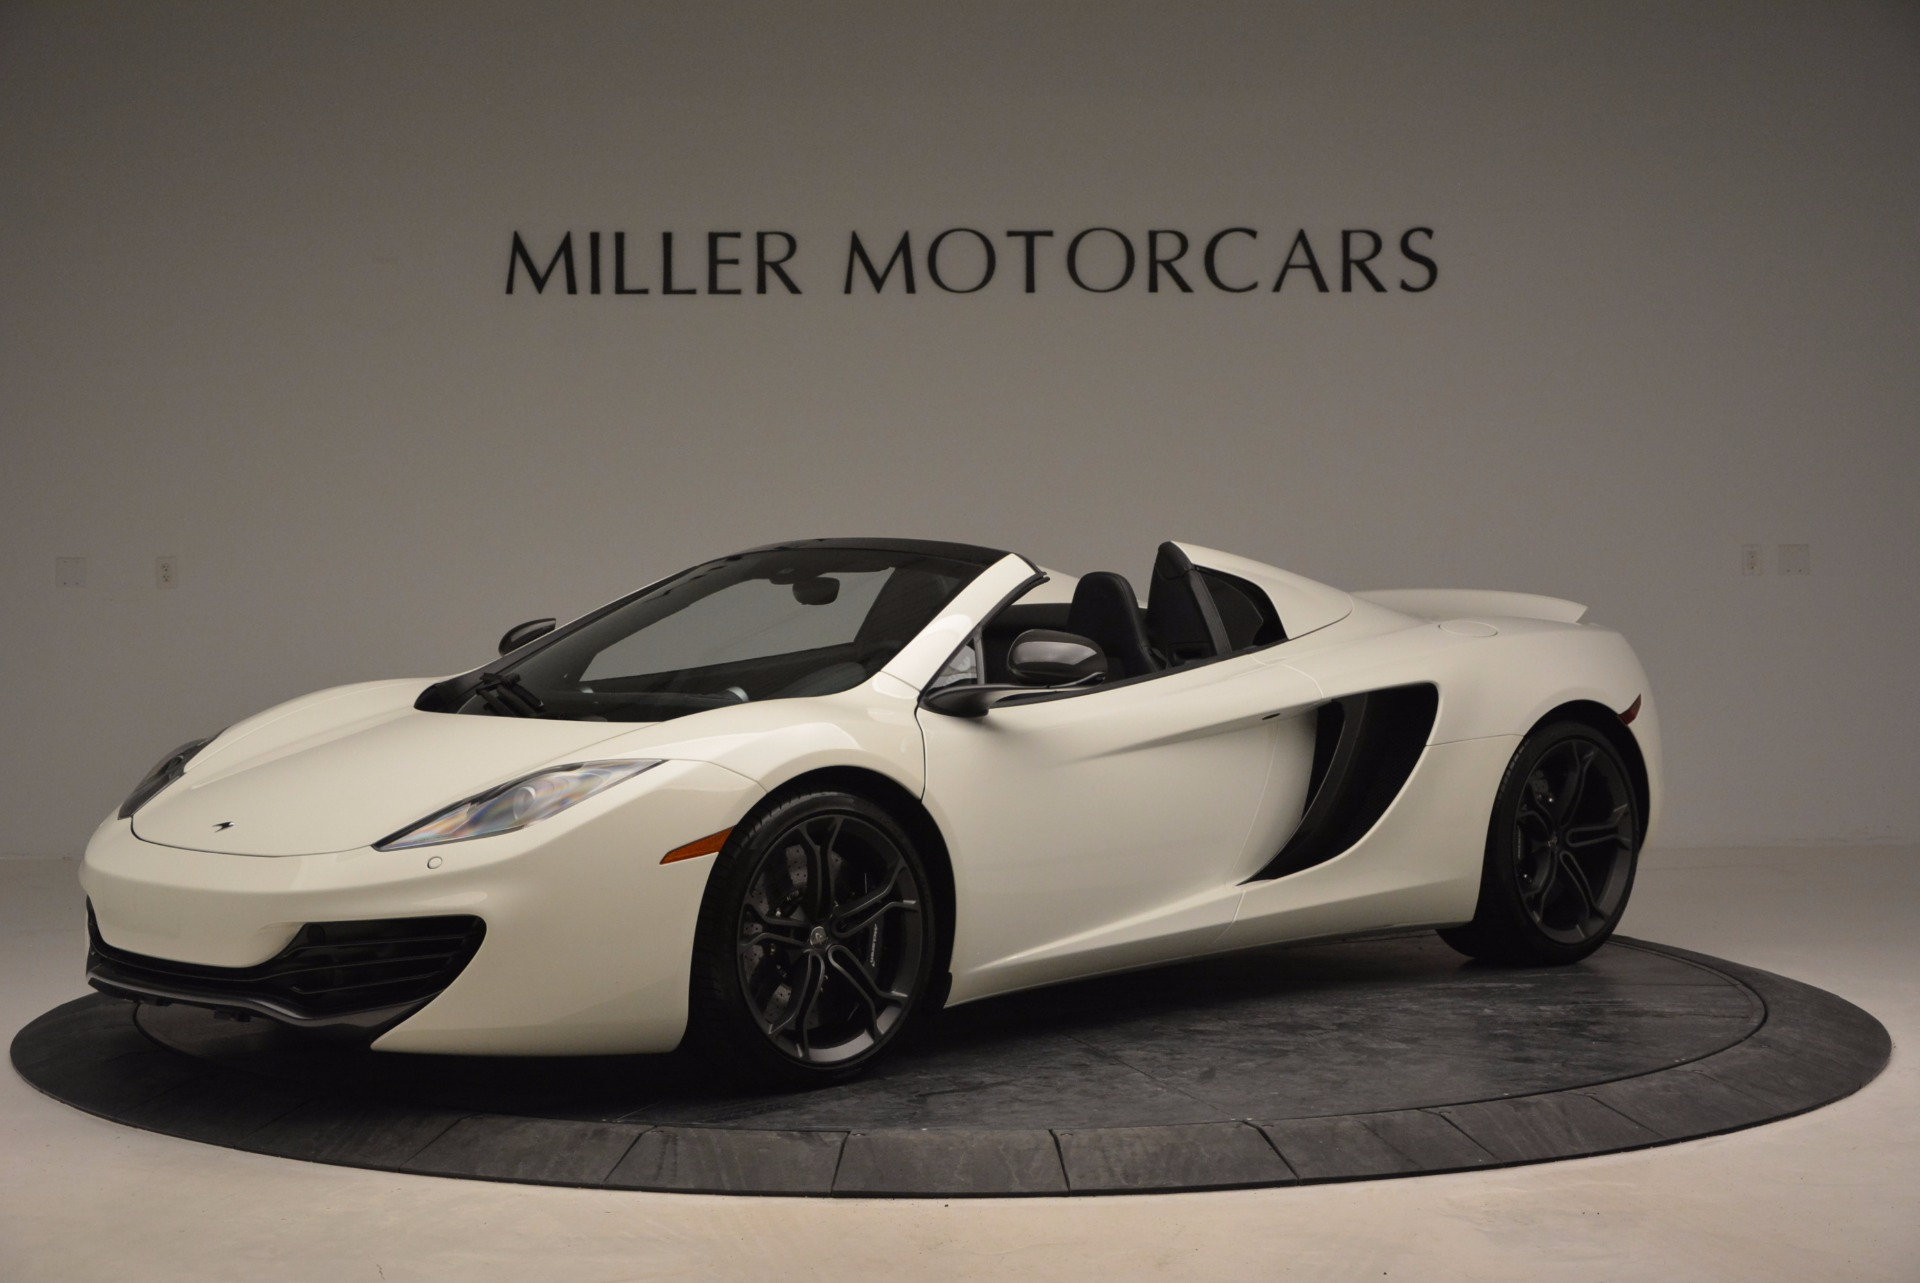 Used 2014 McLaren MP4-12C Spider For Sale In Greenwich, CT. Alfa Romeo of Greenwich, 3136 908_p2